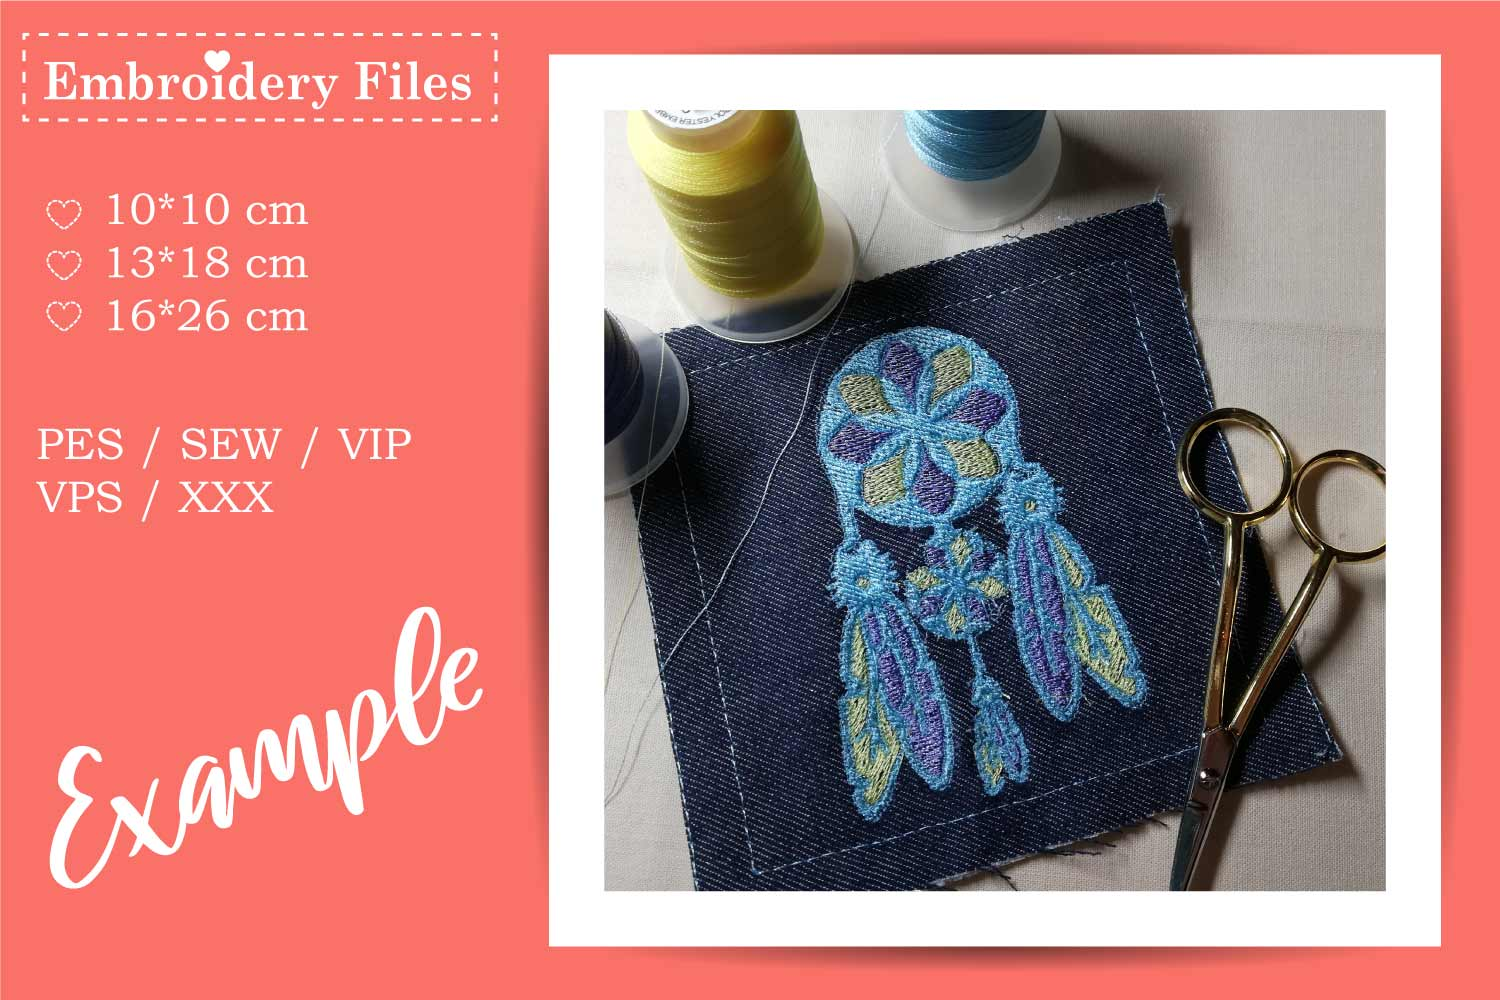 Dreamcatcher - Embroidery File for Beginners example image 1